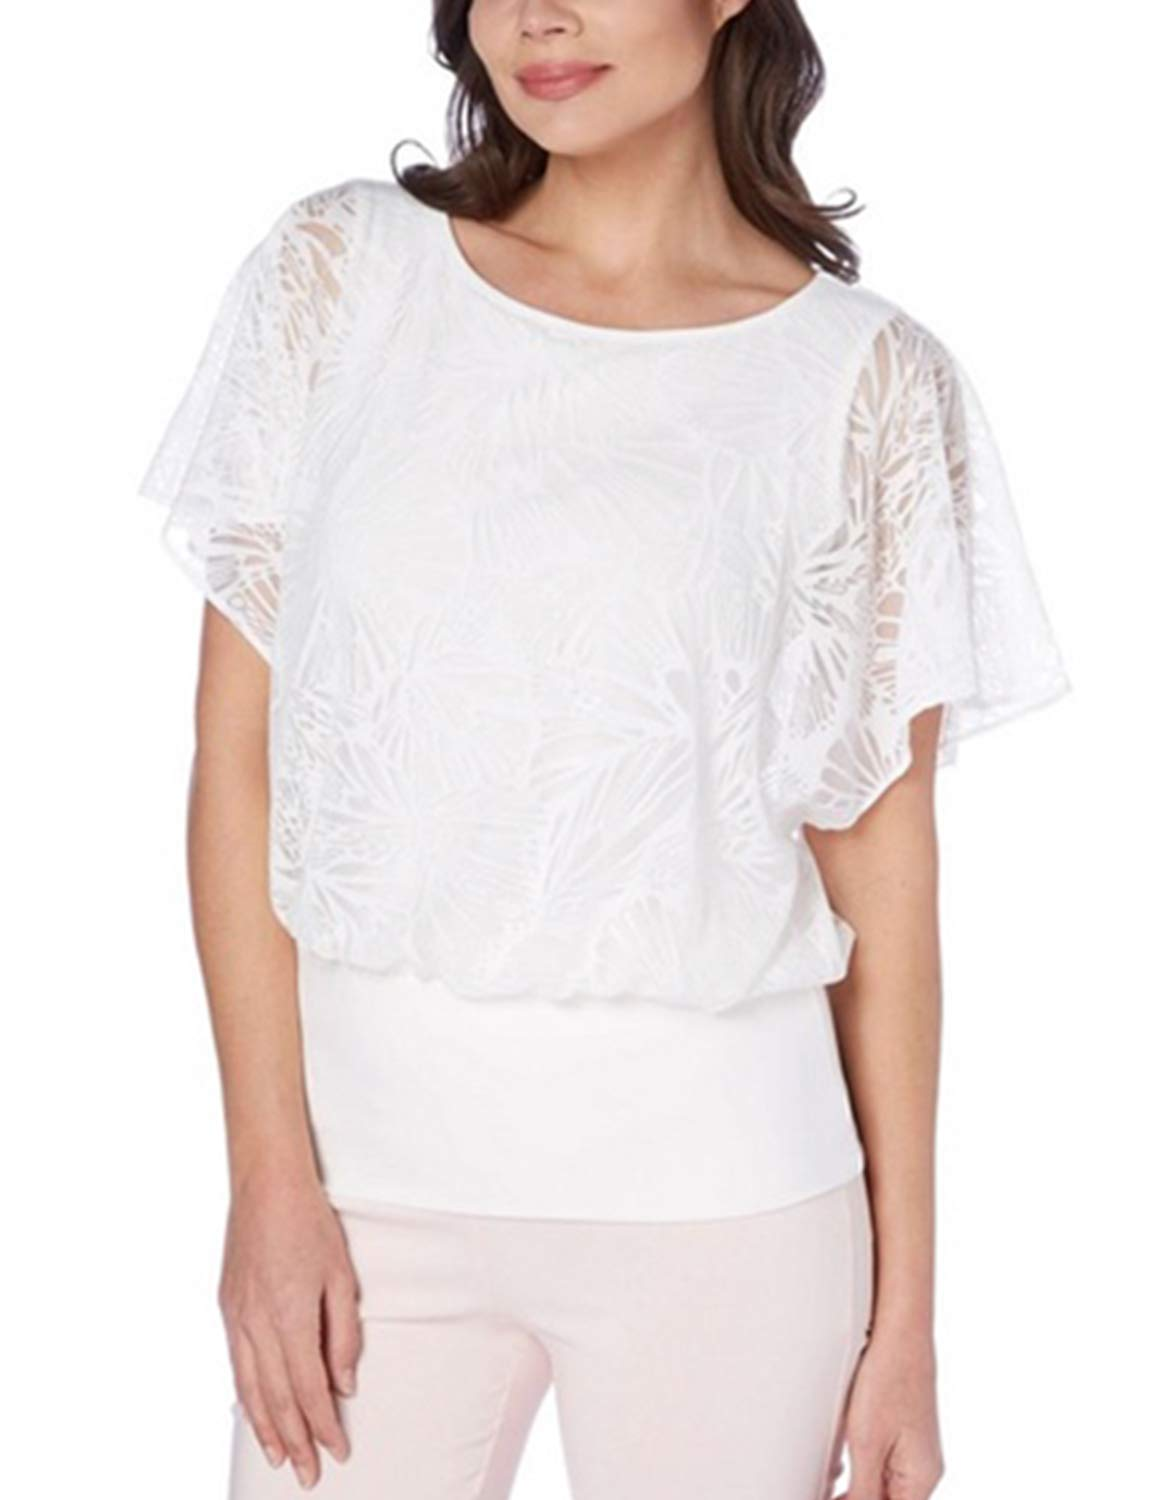 Blooming Jelly Women's Lace Short Bowing Sleeve Button Top Blouse Shirt White